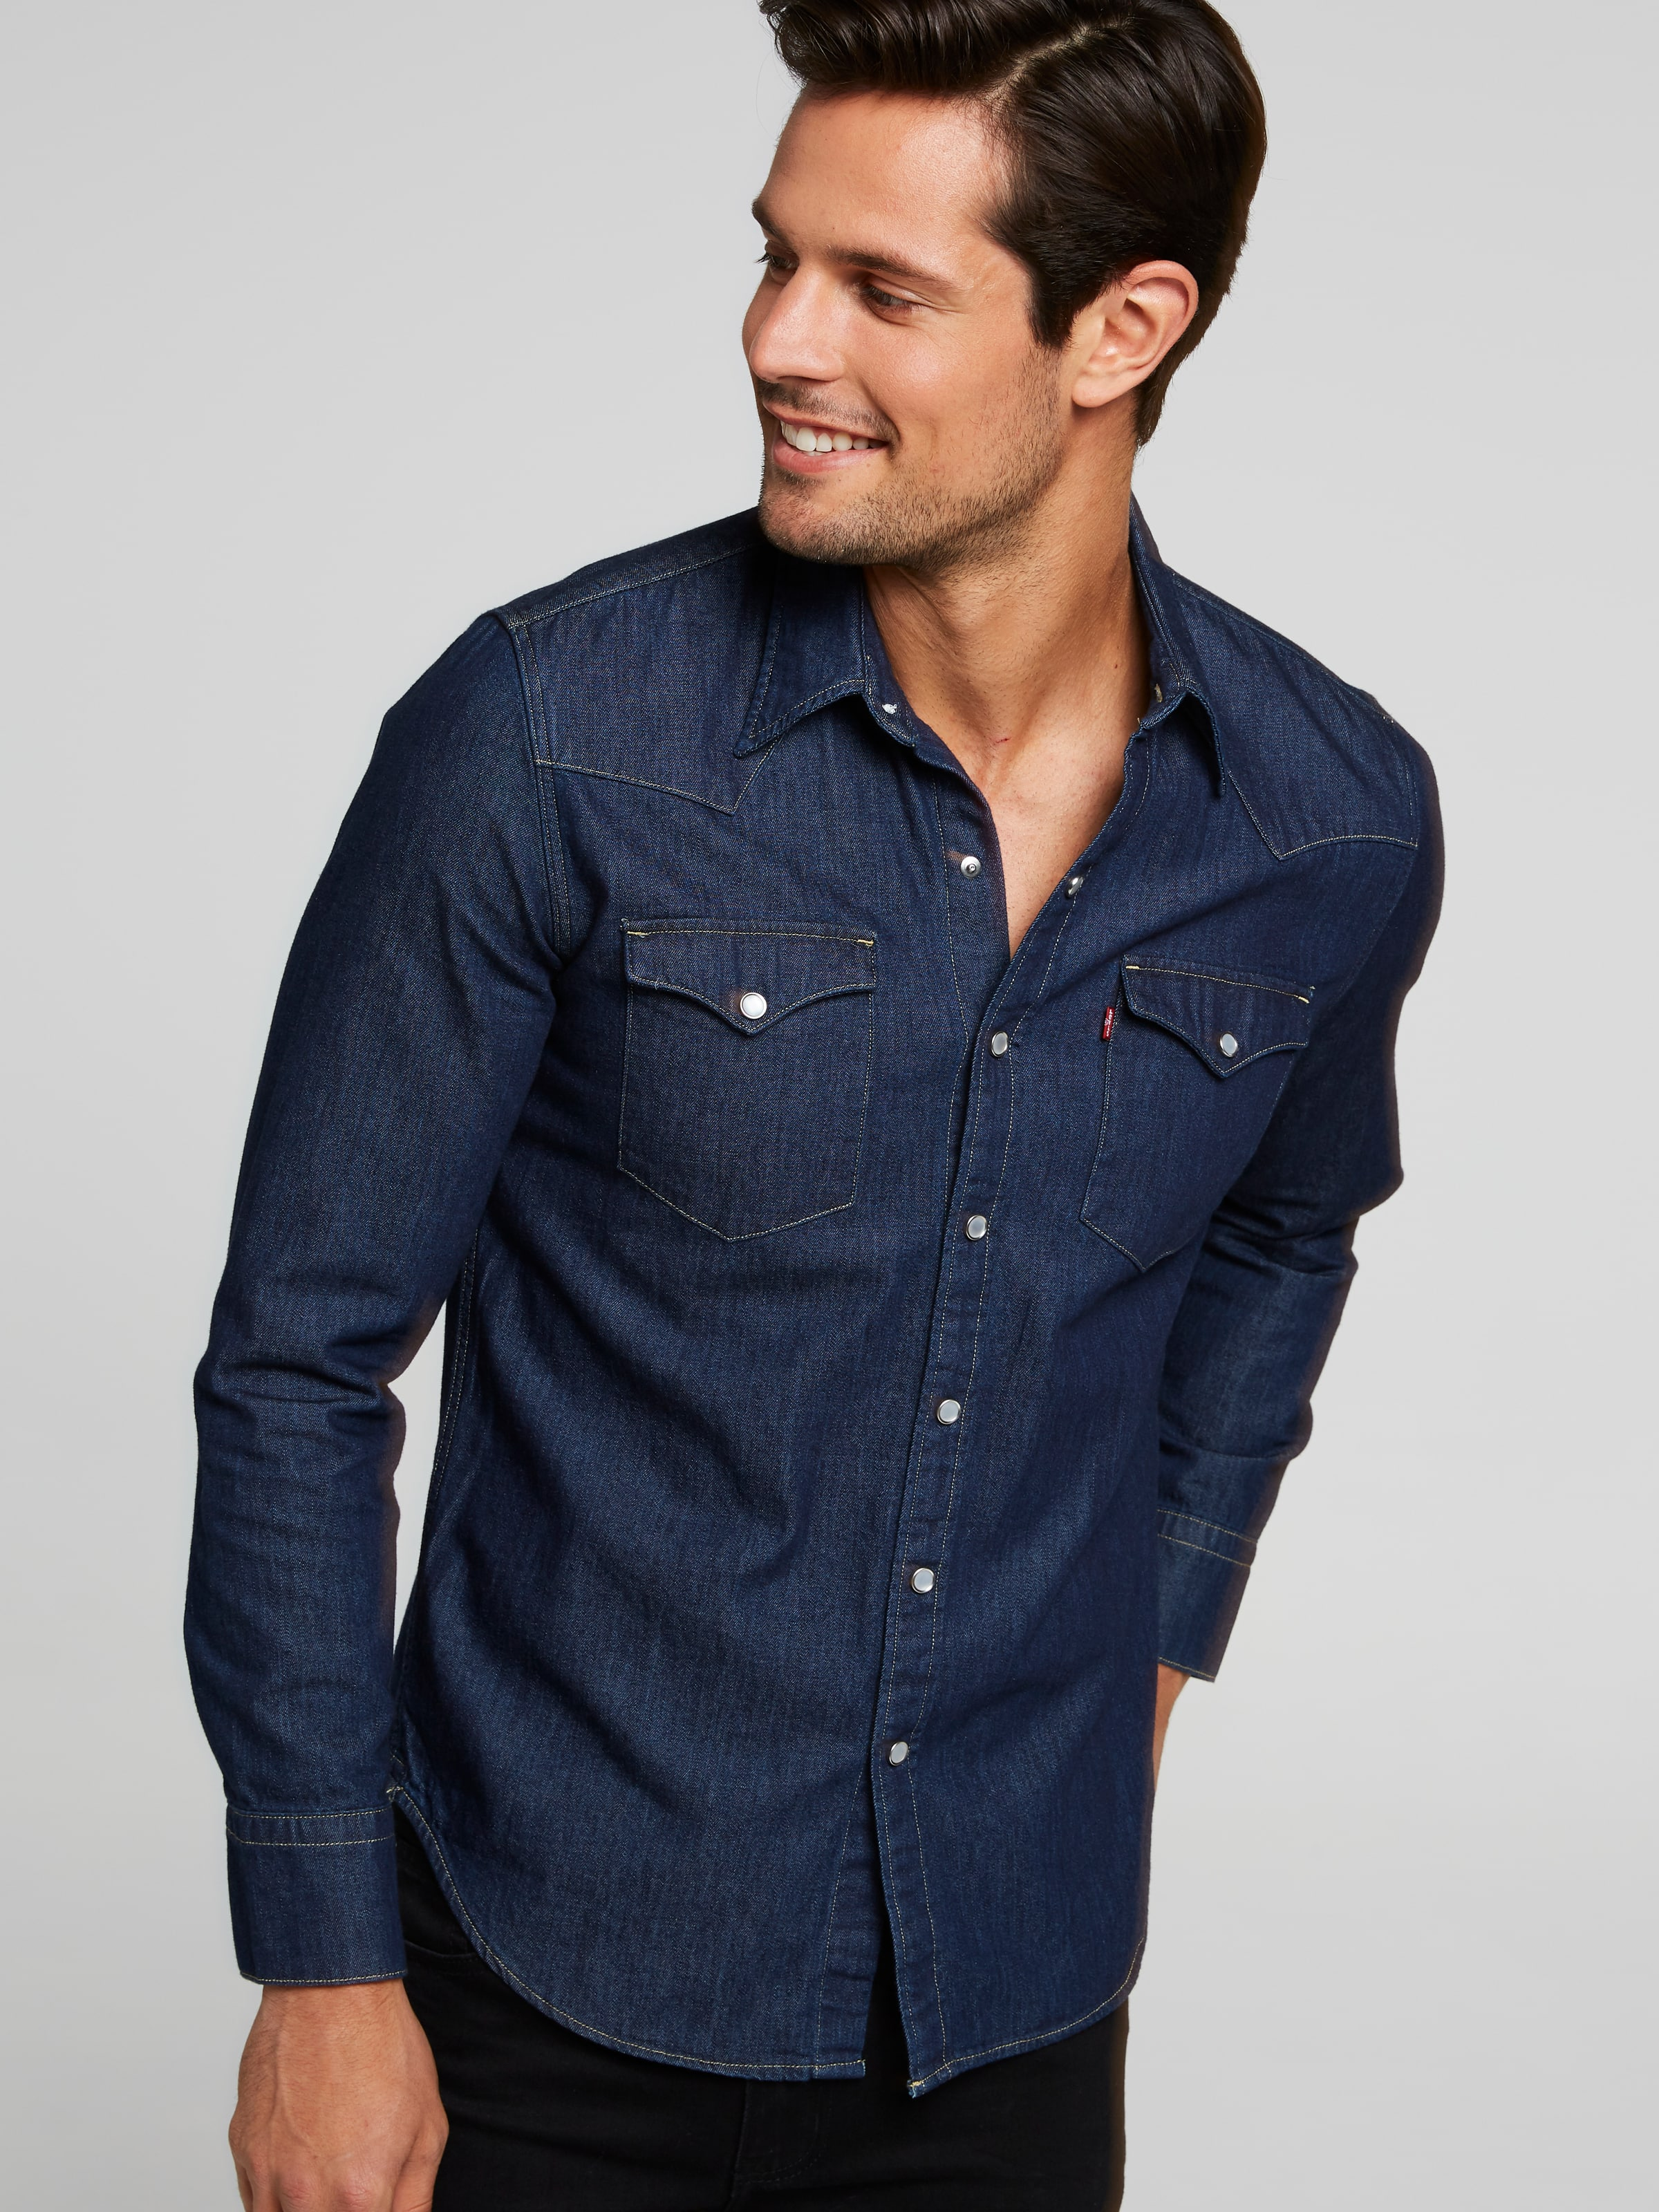 806a7f30e38 Image for Levi Barstow Shirt from Just Jeans ...